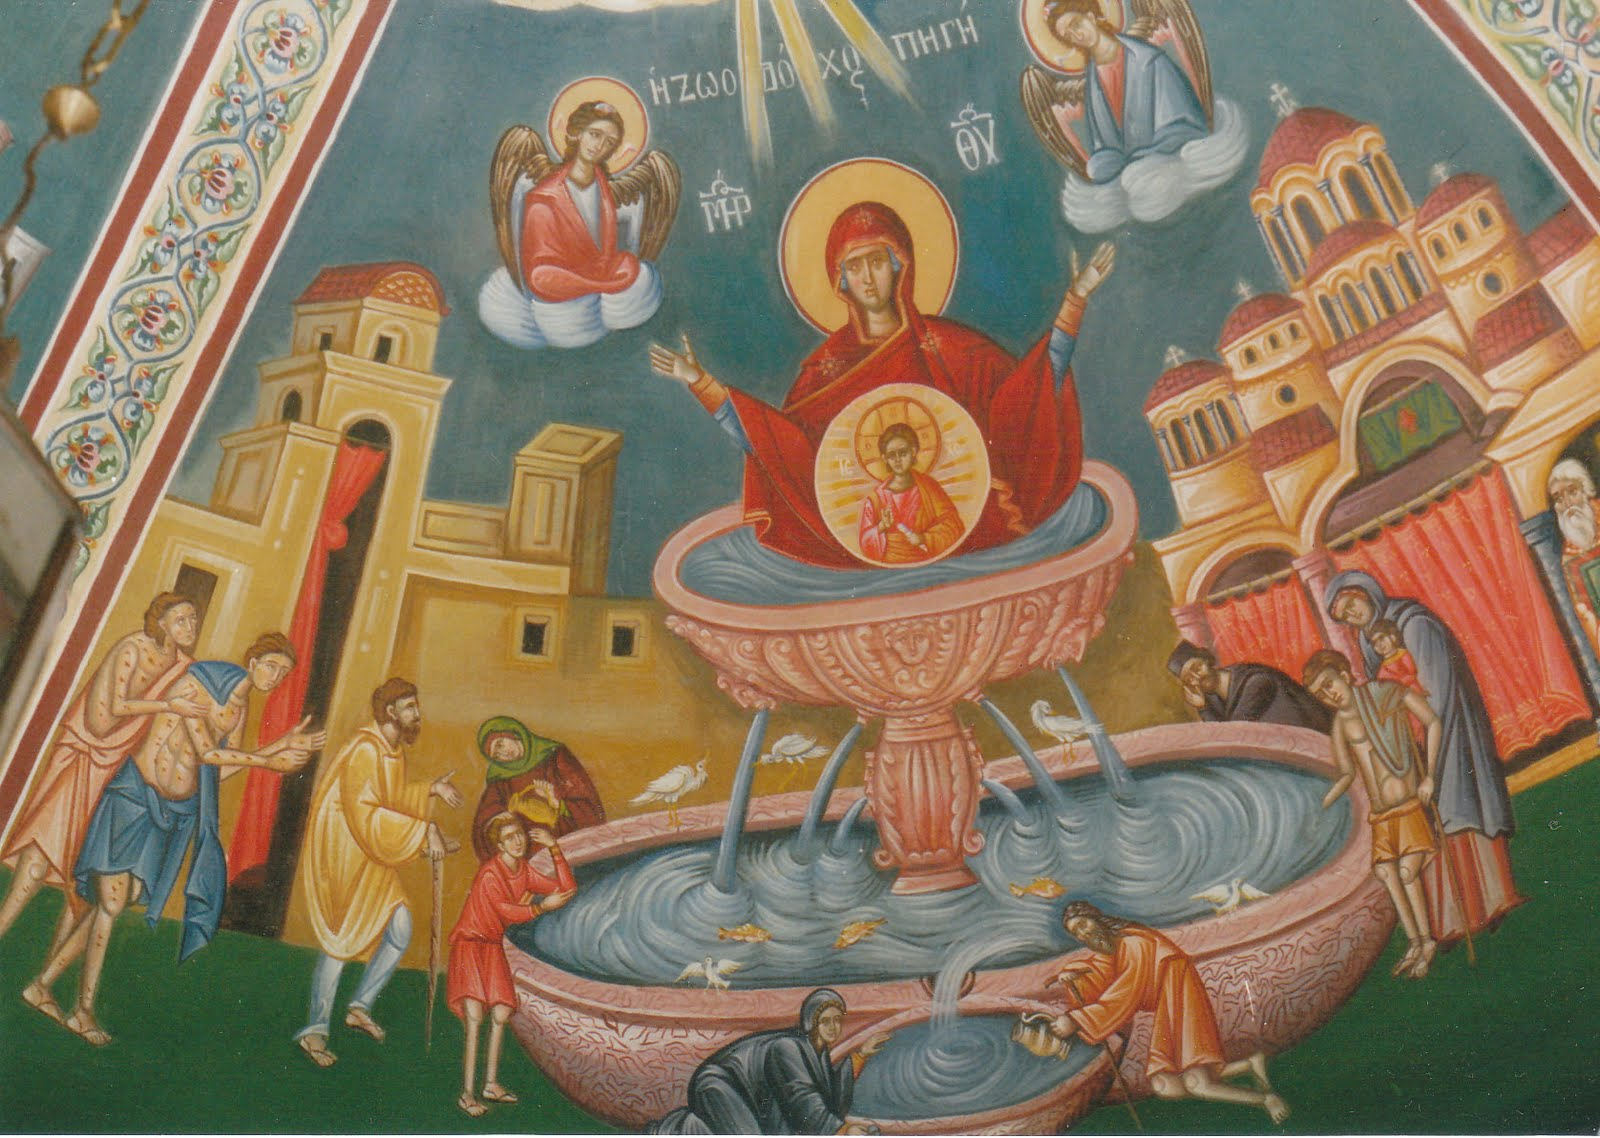 The Theotokos as a life-giving fountain